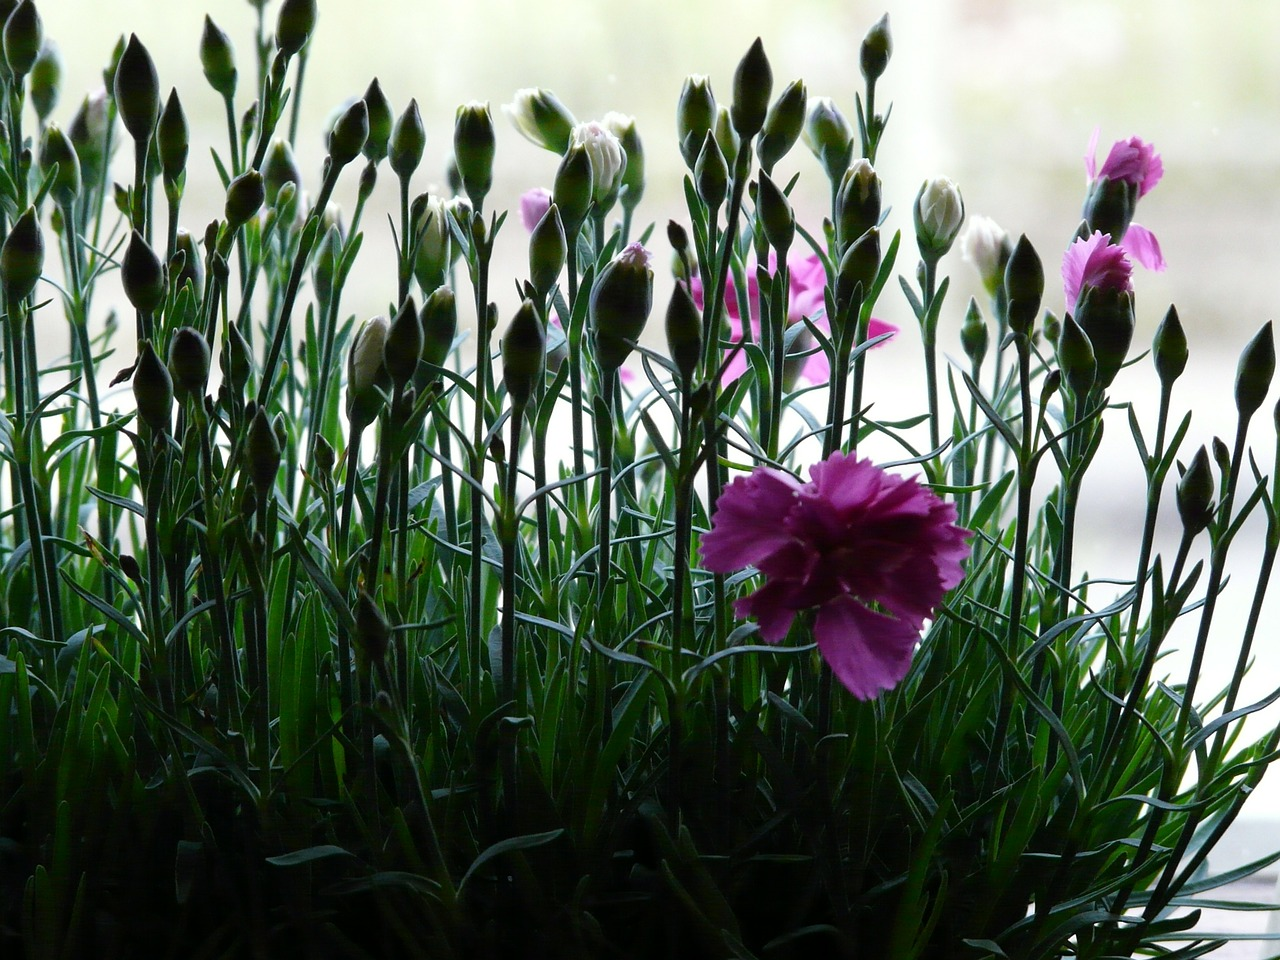 carnation dianthus plant free photo